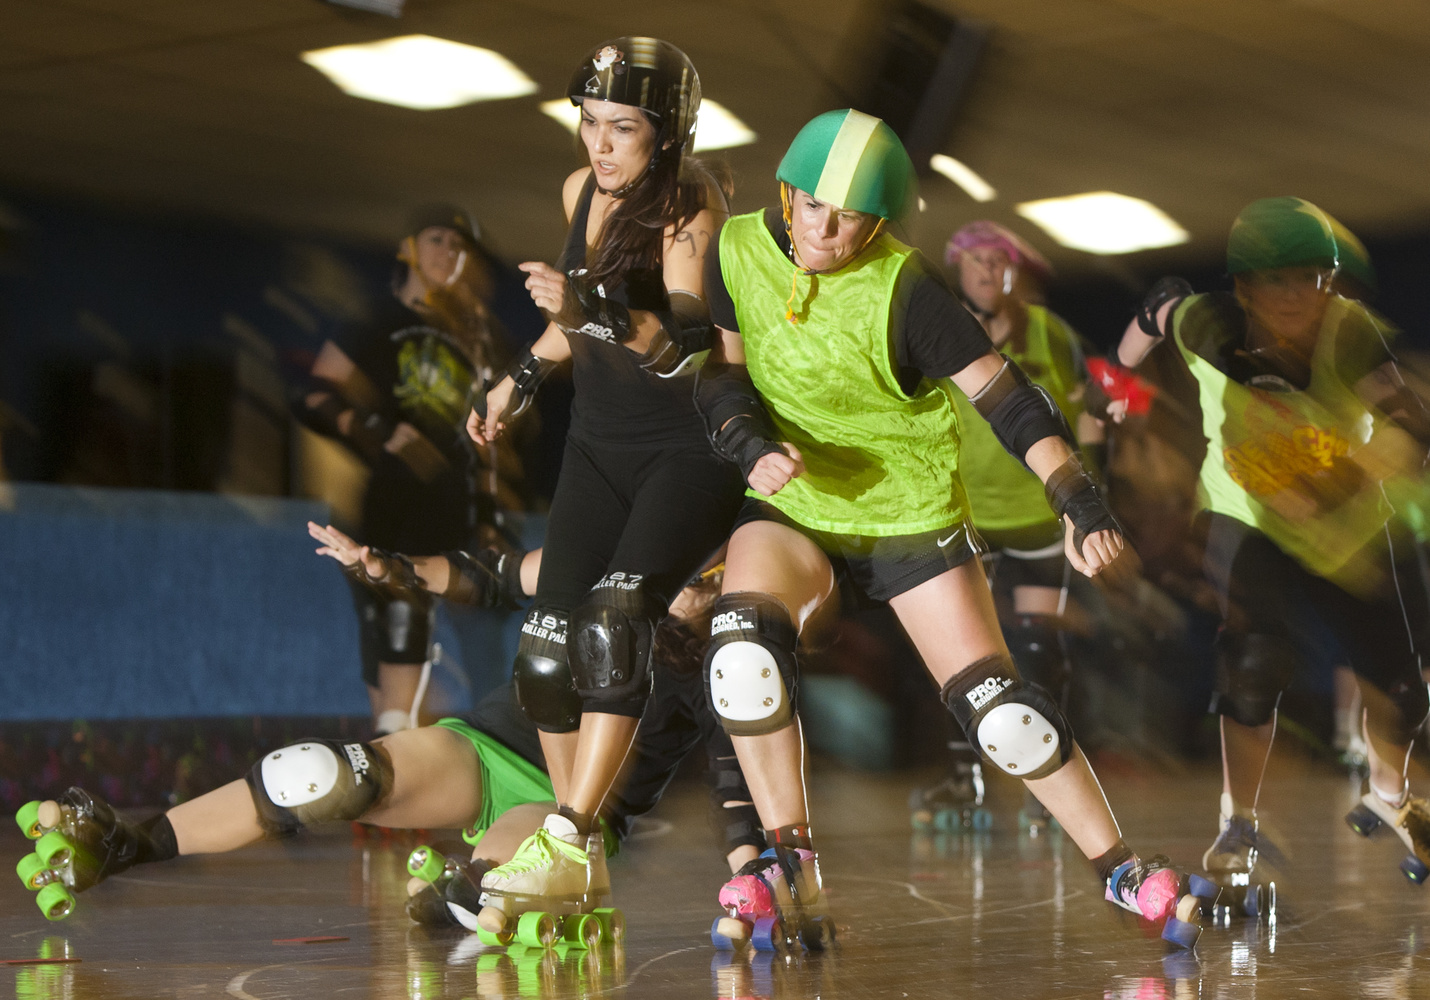 roller derby bout